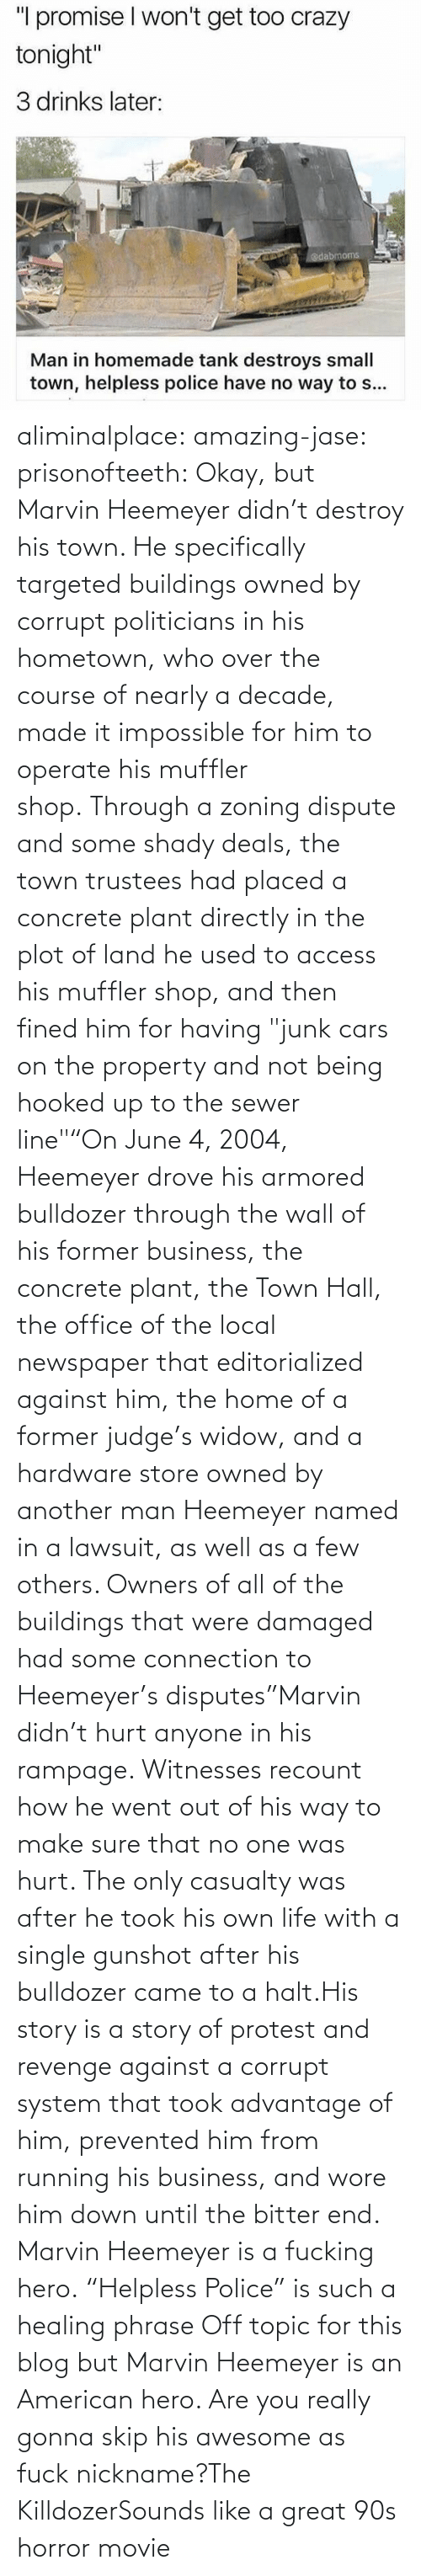 "through: aliminalplace: amazing-jase:  prisonofteeth: Okay, but Marvin Heemeyer didn't destroy his town. He specifically targeted buildings owned by corrupt politicians in his hometown, who over the course of nearly a decade, made it impossible for him to operate his muffler shop. Through a zoning dispute and some shady deals, the town trustees had placed a concrete plant directly in the plot of land he used to access his muffler shop, and then fined him for having ""junk cars on the property and not being hooked up to the sewer line""""On June 4, 2004, Heemeyer drove his armored bulldozer through the wall of his former business, the concrete plant, the Town Hall, the office of the local newspaper that editorialized against him, the home of a former judge's widow, and a hardware store owned by another man Heemeyer named in a lawsuit, as well as a few others. Owners of all of the buildings that were damaged had some connection to Heemeyer's disputes""Marvin didn't hurt anyone in his rampage. Witnesses recount how he went out of his way to make sure that no one was hurt. The only casualty was after he took his own life with a single gunshot after his bulldozer came to a halt.His story is a story of protest and revenge against a corrupt system that took advantage of him, prevented him from running his business, and wore him down until the bitter end. Marvin Heemeyer is a fucking hero. ""Helpless Police"" is such a healing phrase    Off topic for this blog but Marvin Heemeyer is an American hero.     Are you really gonna skip his awesome as fuck nickname?The KilldozerSounds like a great 90s horror movie"